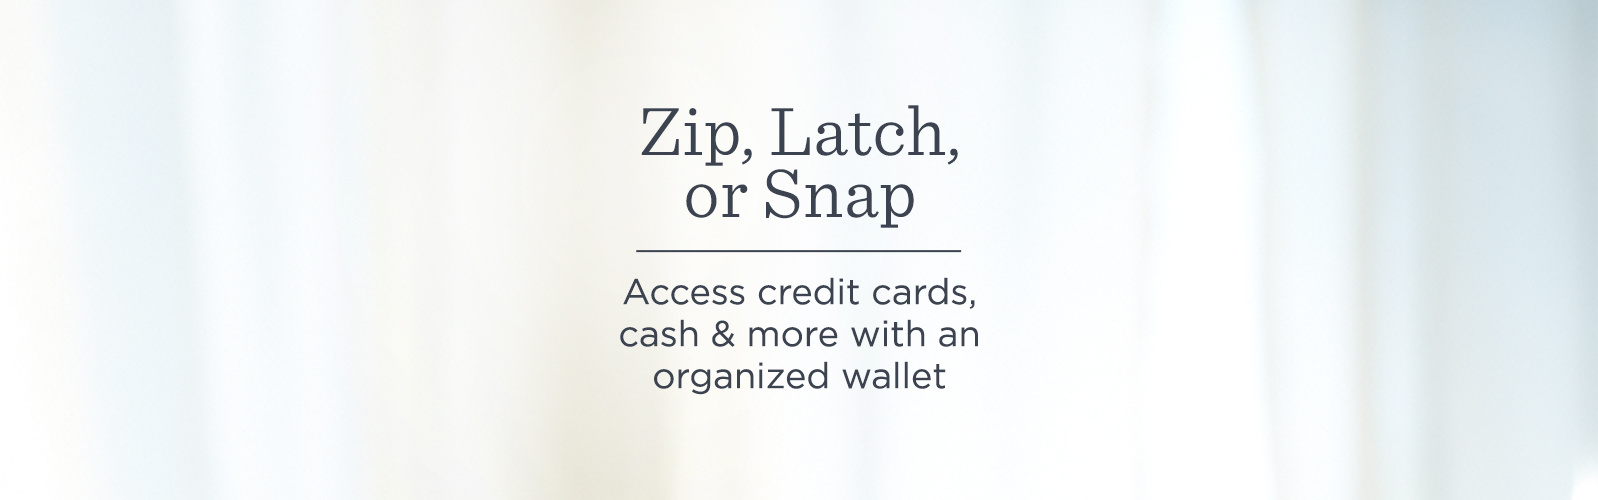 Zip, Latch, or Snap  Access credit cards, cash & more with an organized wallet